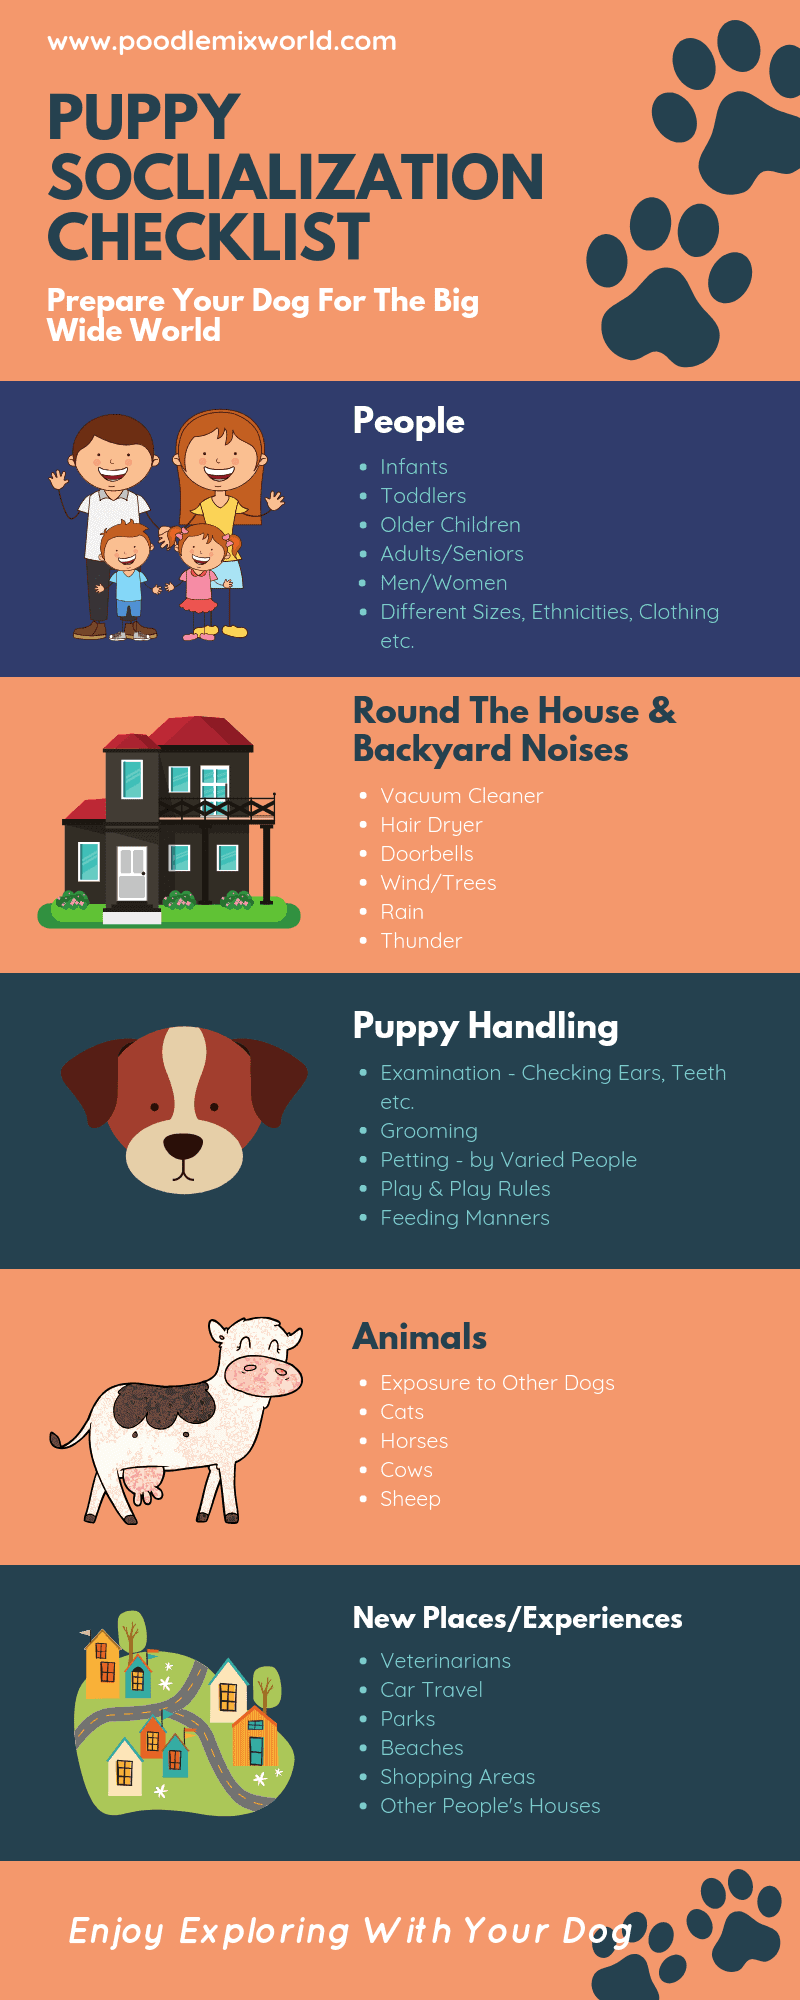 Puppy Socialization Checklist - Areas that can be targeted to effectively socialize your puppy